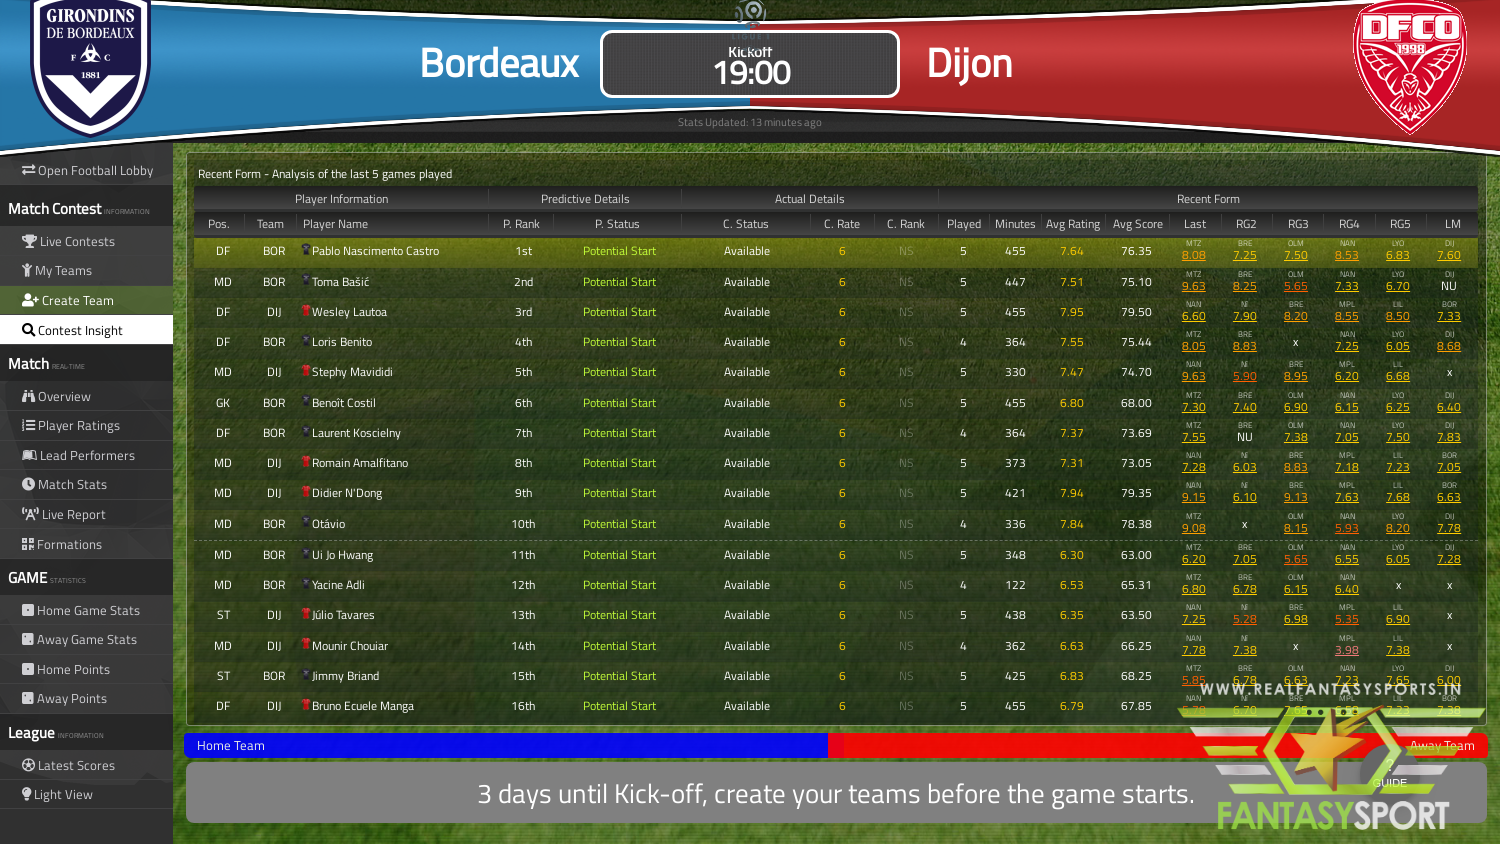 Dream Team Pick For Bordeaux Vs Dijon